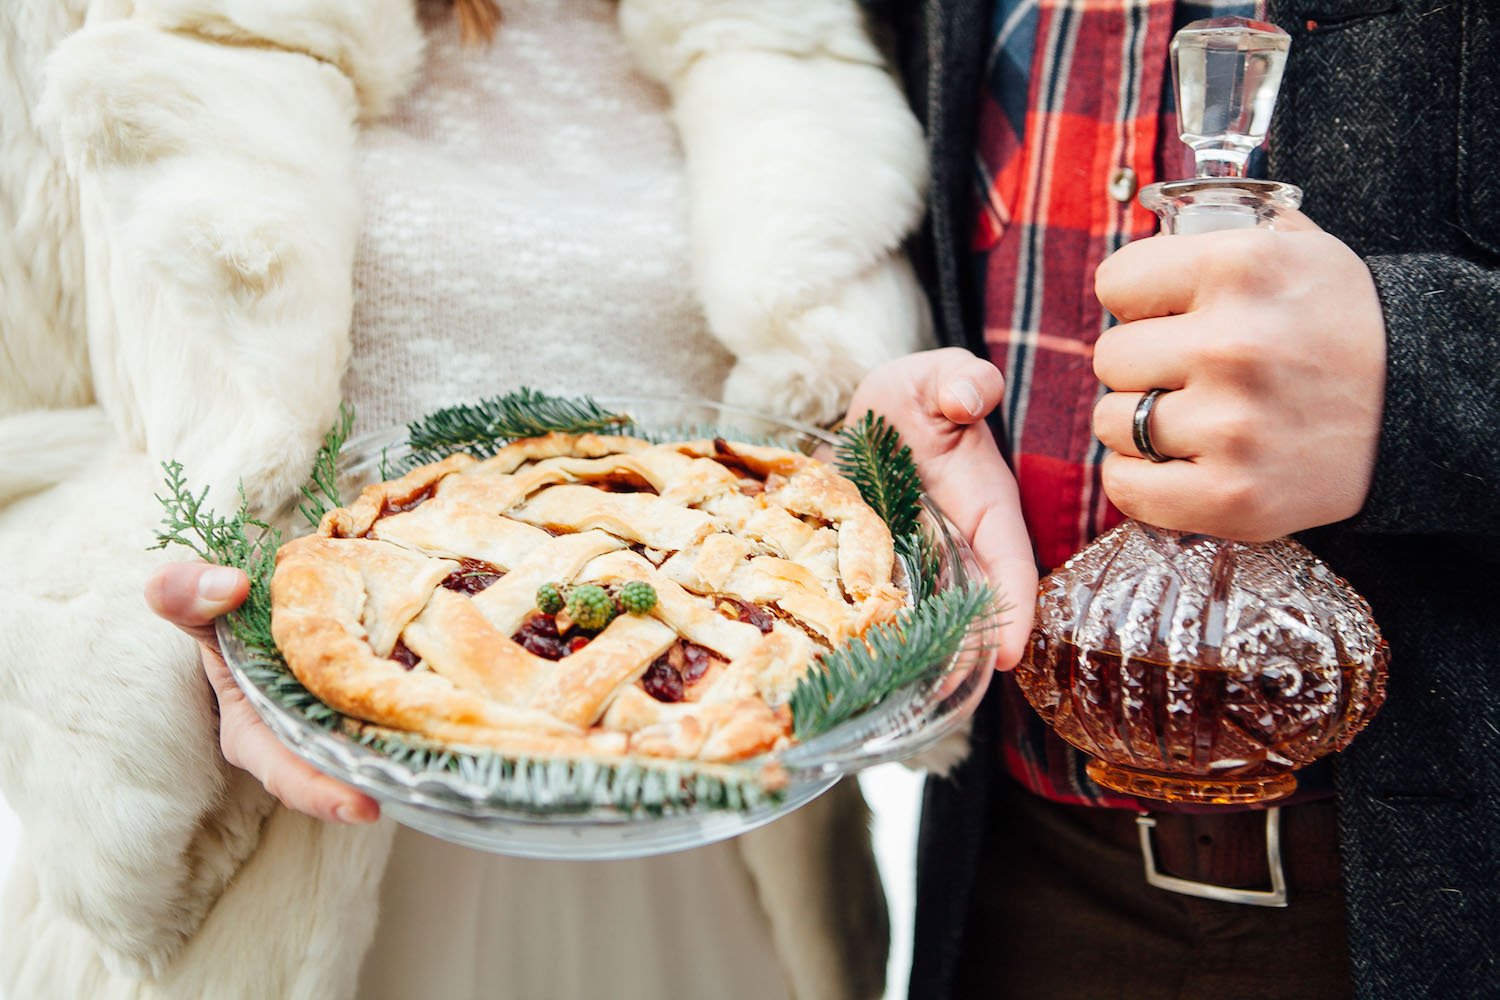 kate-salley-photography-wedding-pies